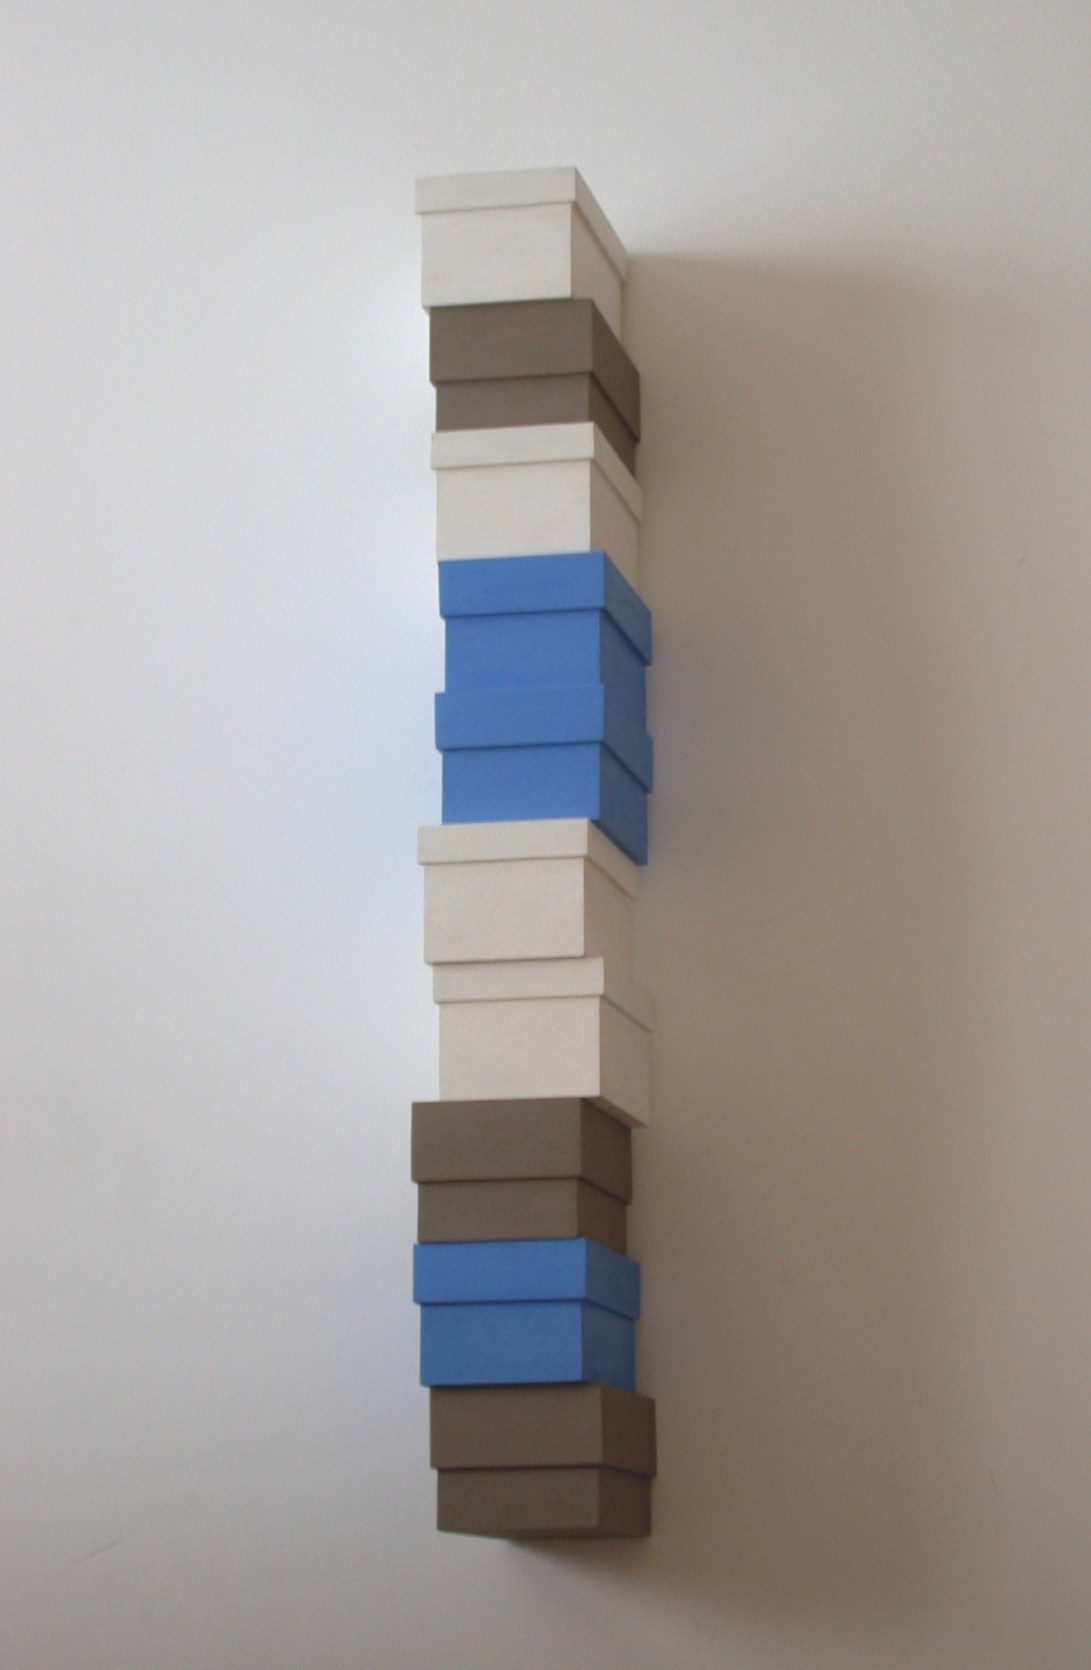 Sculpture 6, Untitled stack